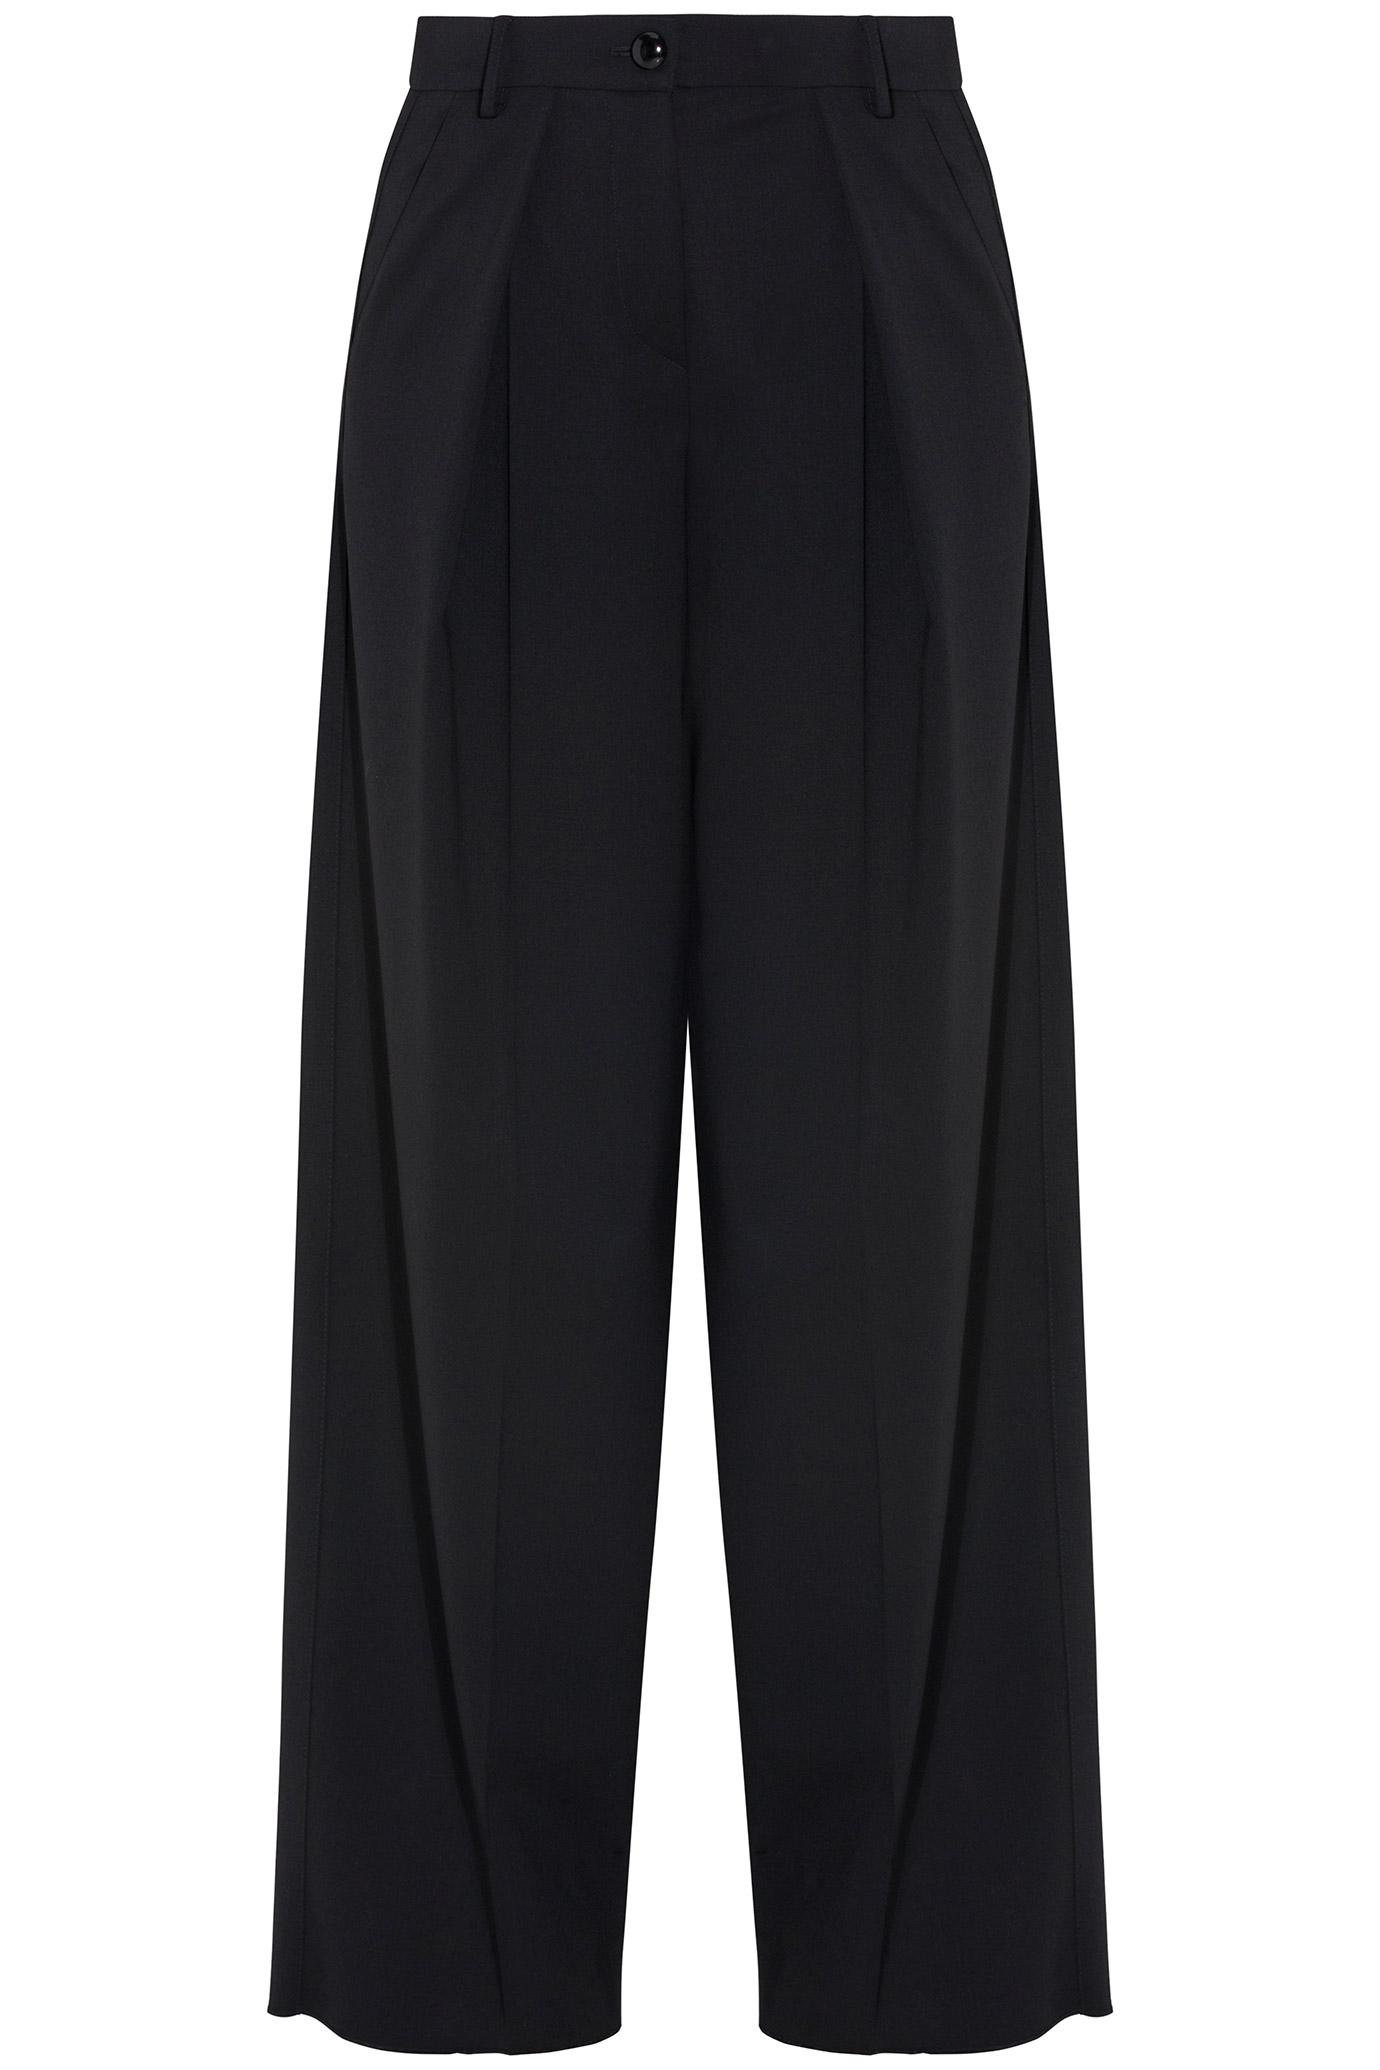 Creative Women S Pants Tailored Front Easywear Our Women S Tailored Front Pants